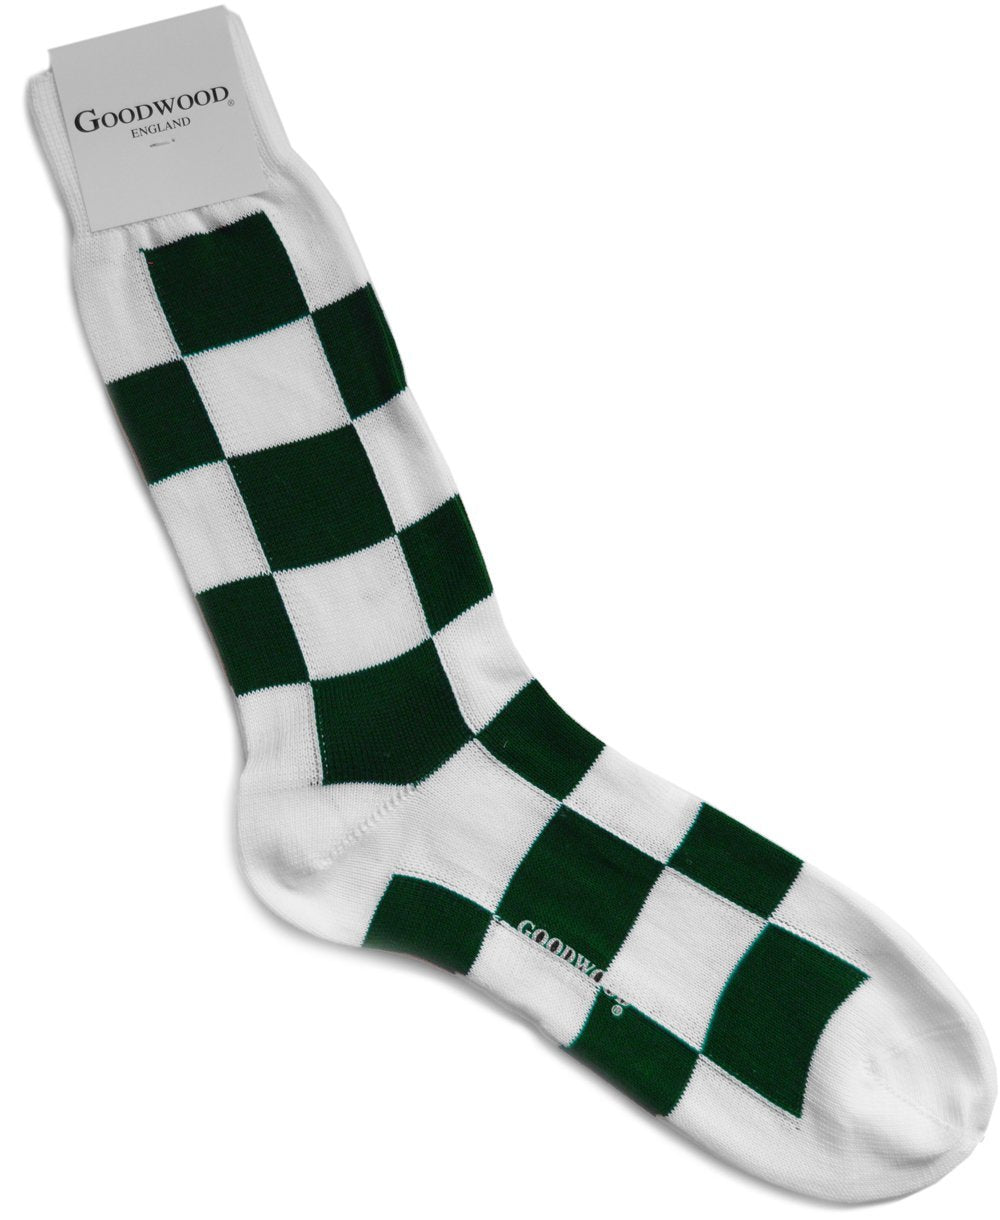 Goodwood Cotton Green White Chequerboard Socks